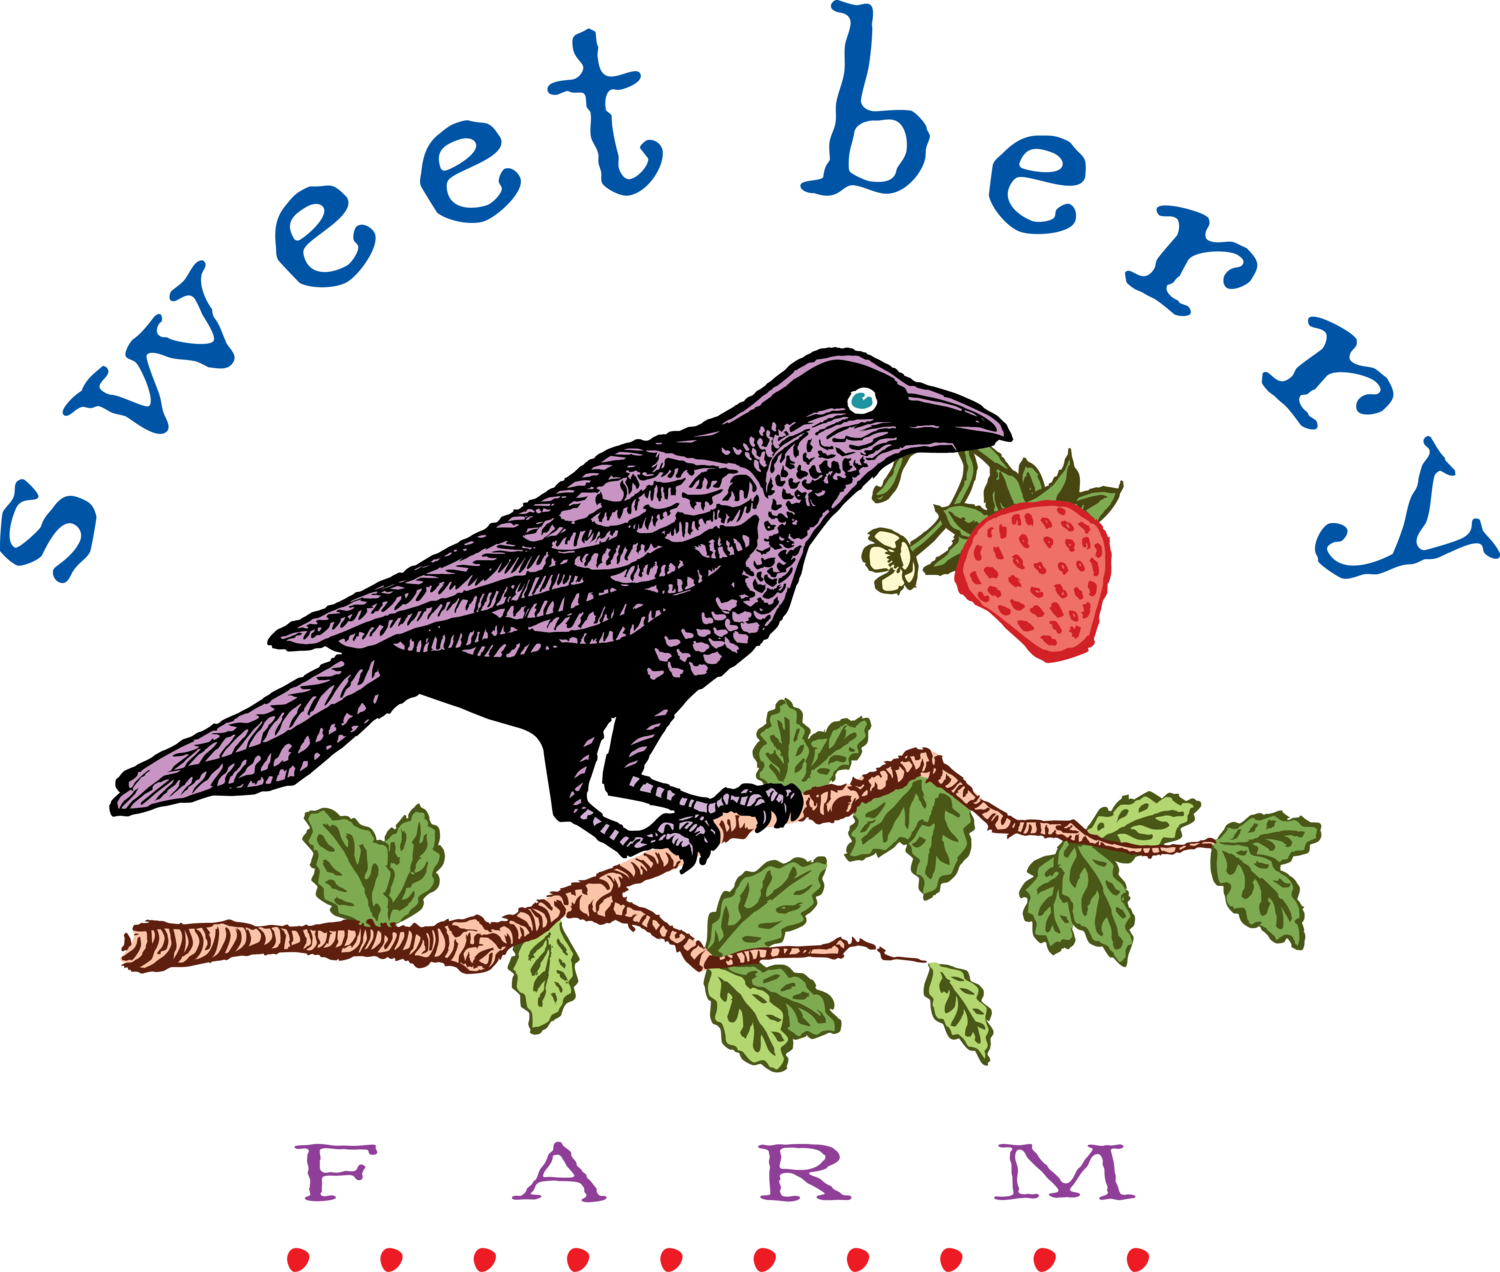 SweetBerry_SIte_logo.png